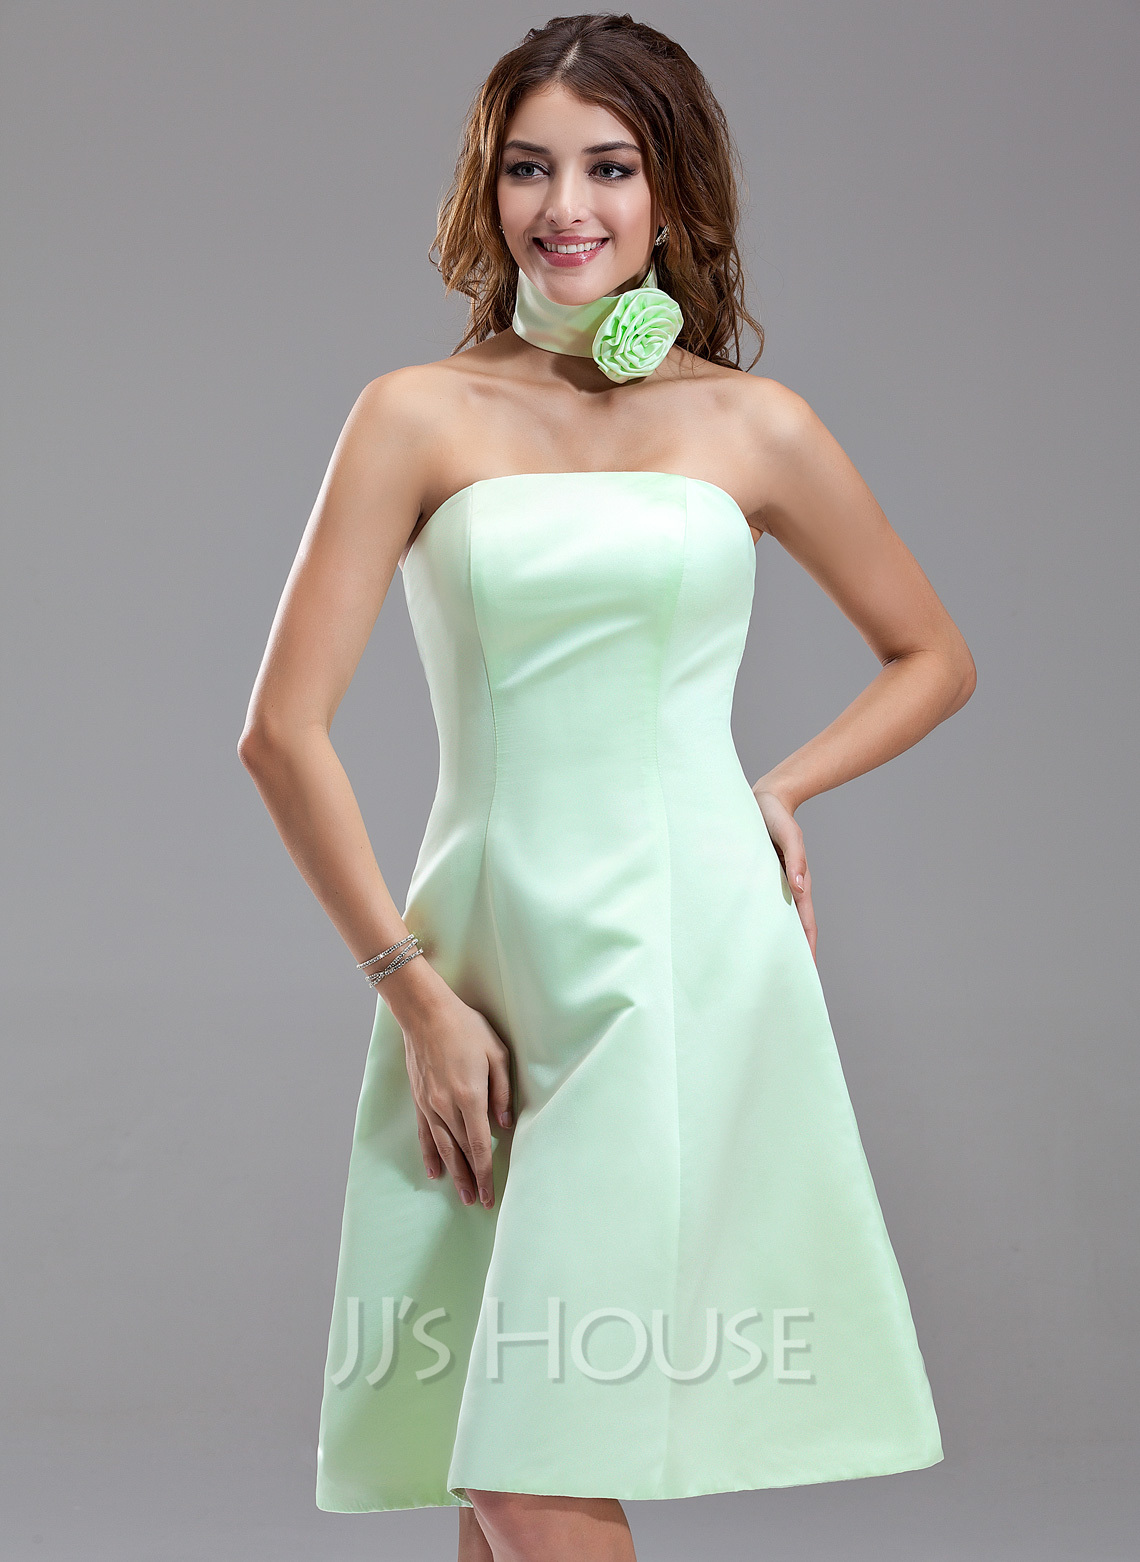 5da625bbbe1b0 A-Line/Princess Strapless Knee-Length Satin Bridesmaid Dress. Loading zoom